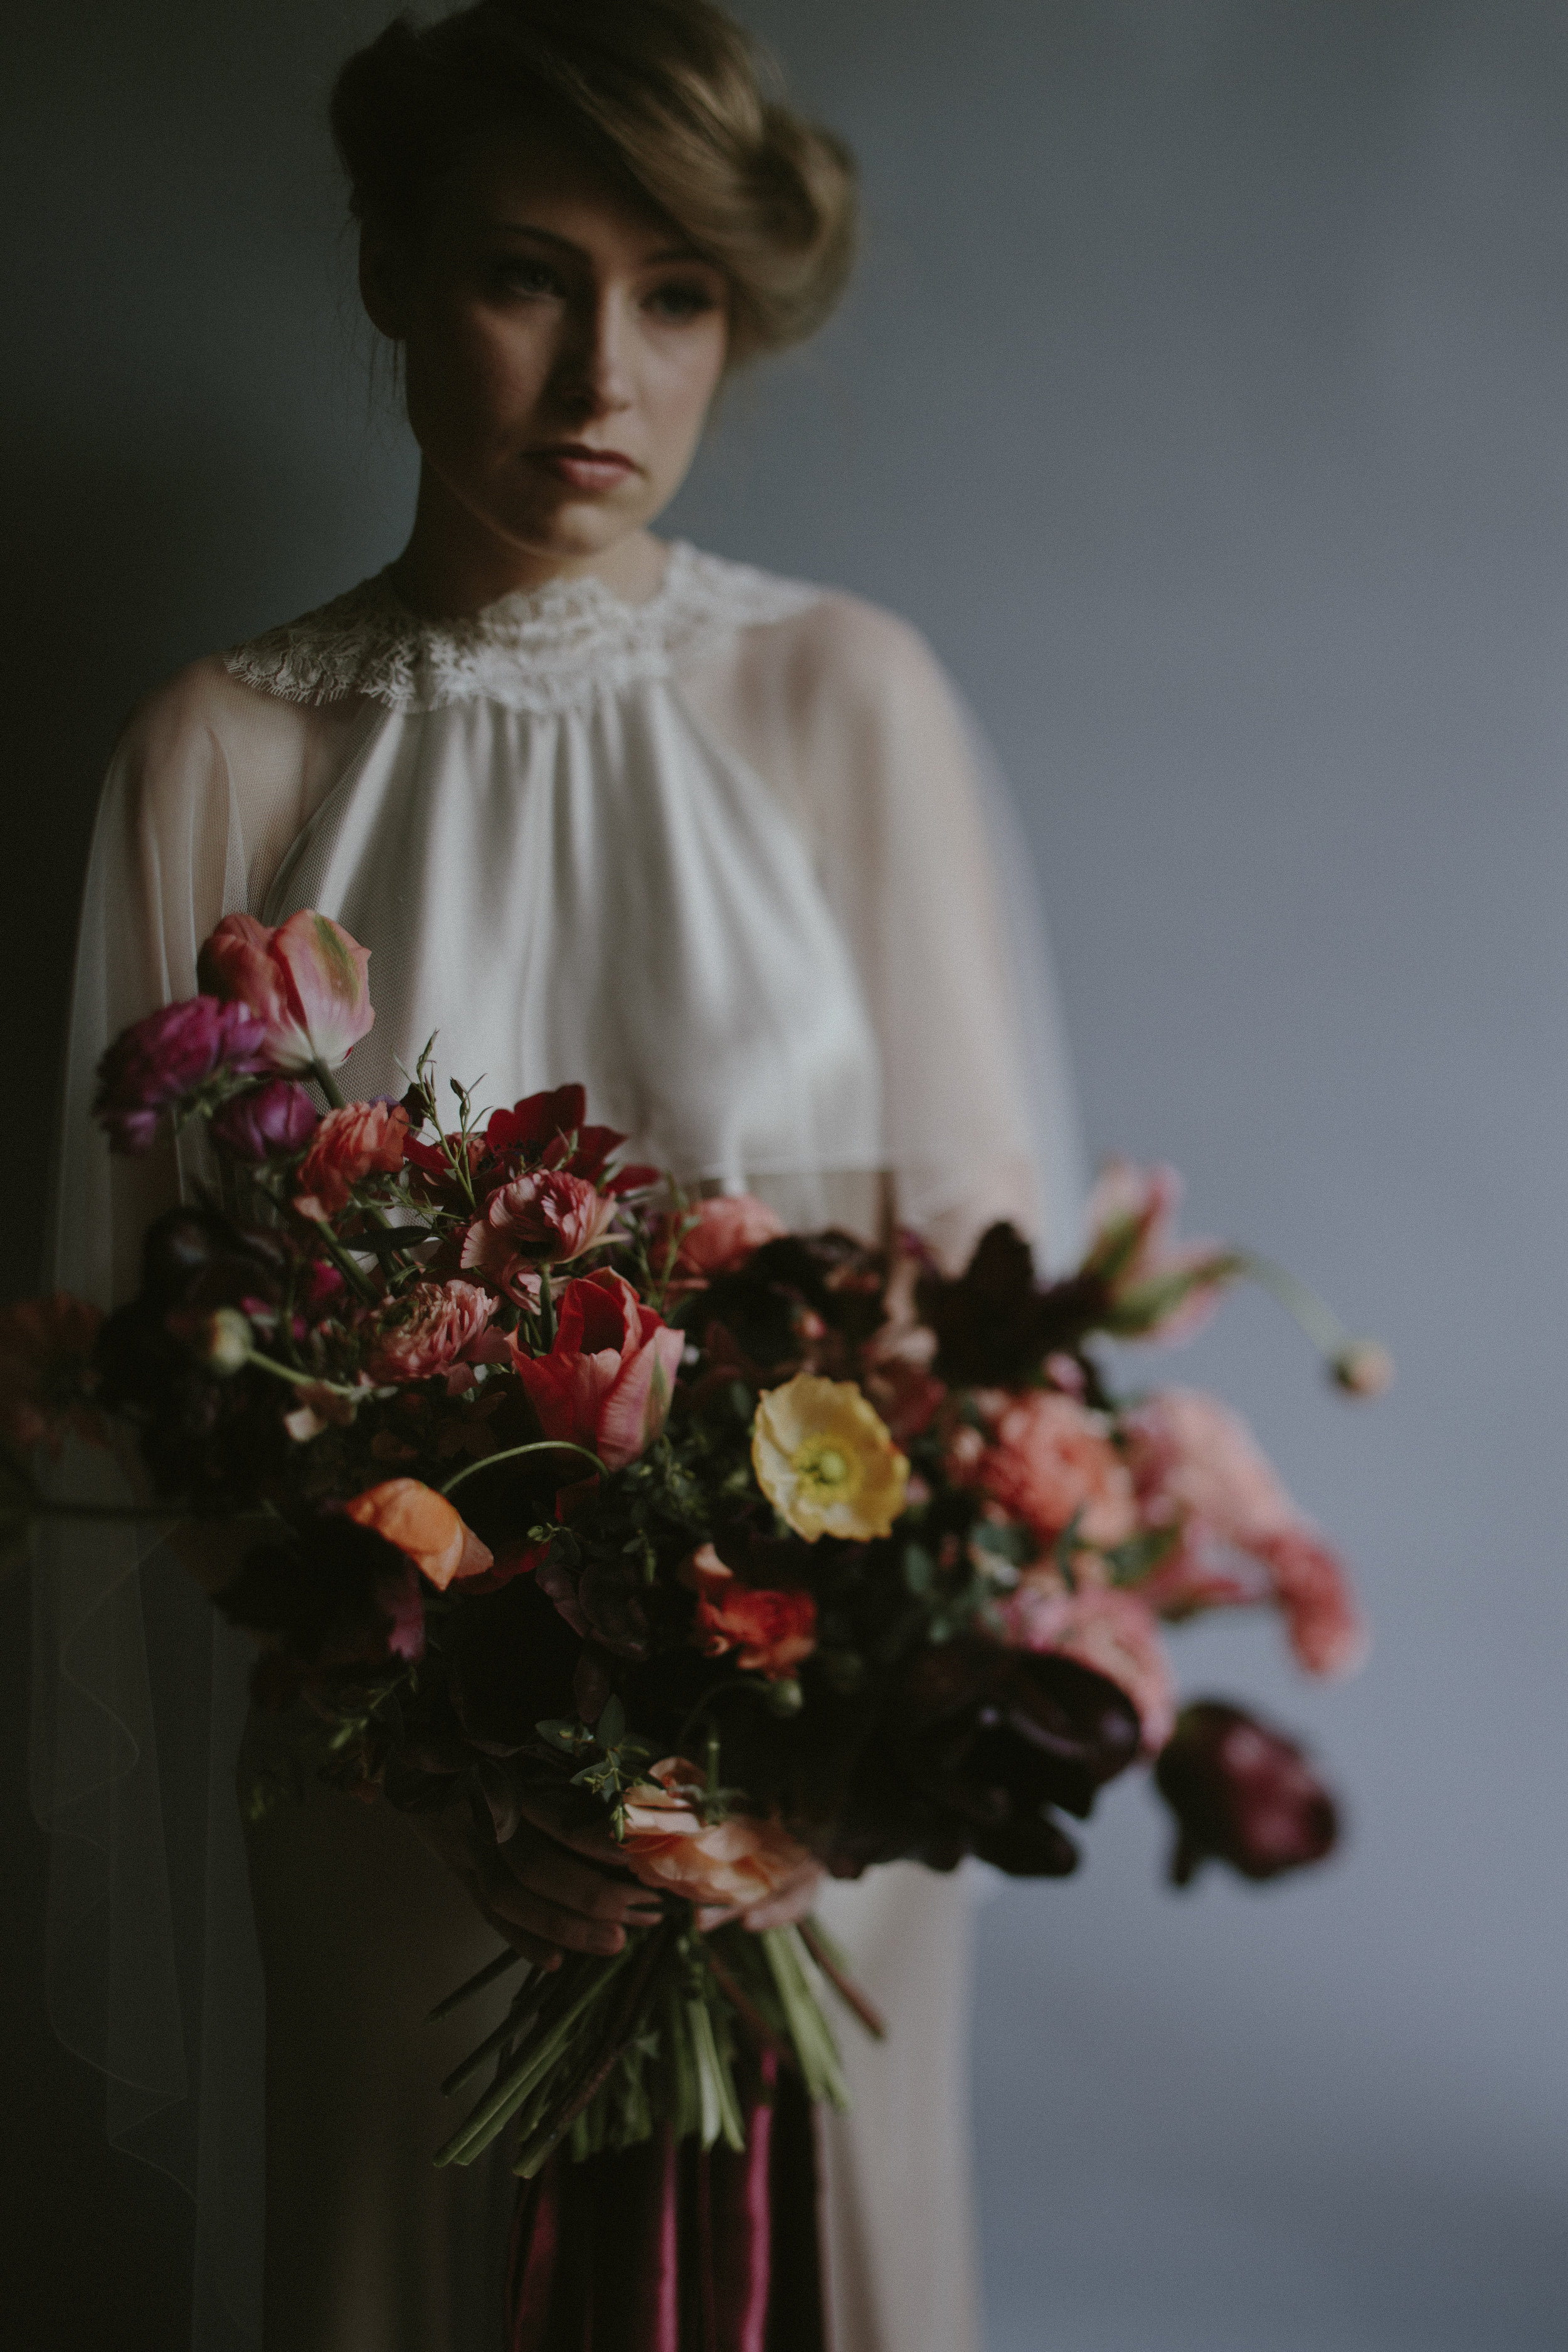 Agnes-and-bee-Kate-Beaumont-wedding-dresses-Ruth-Atkinson-7.jpg